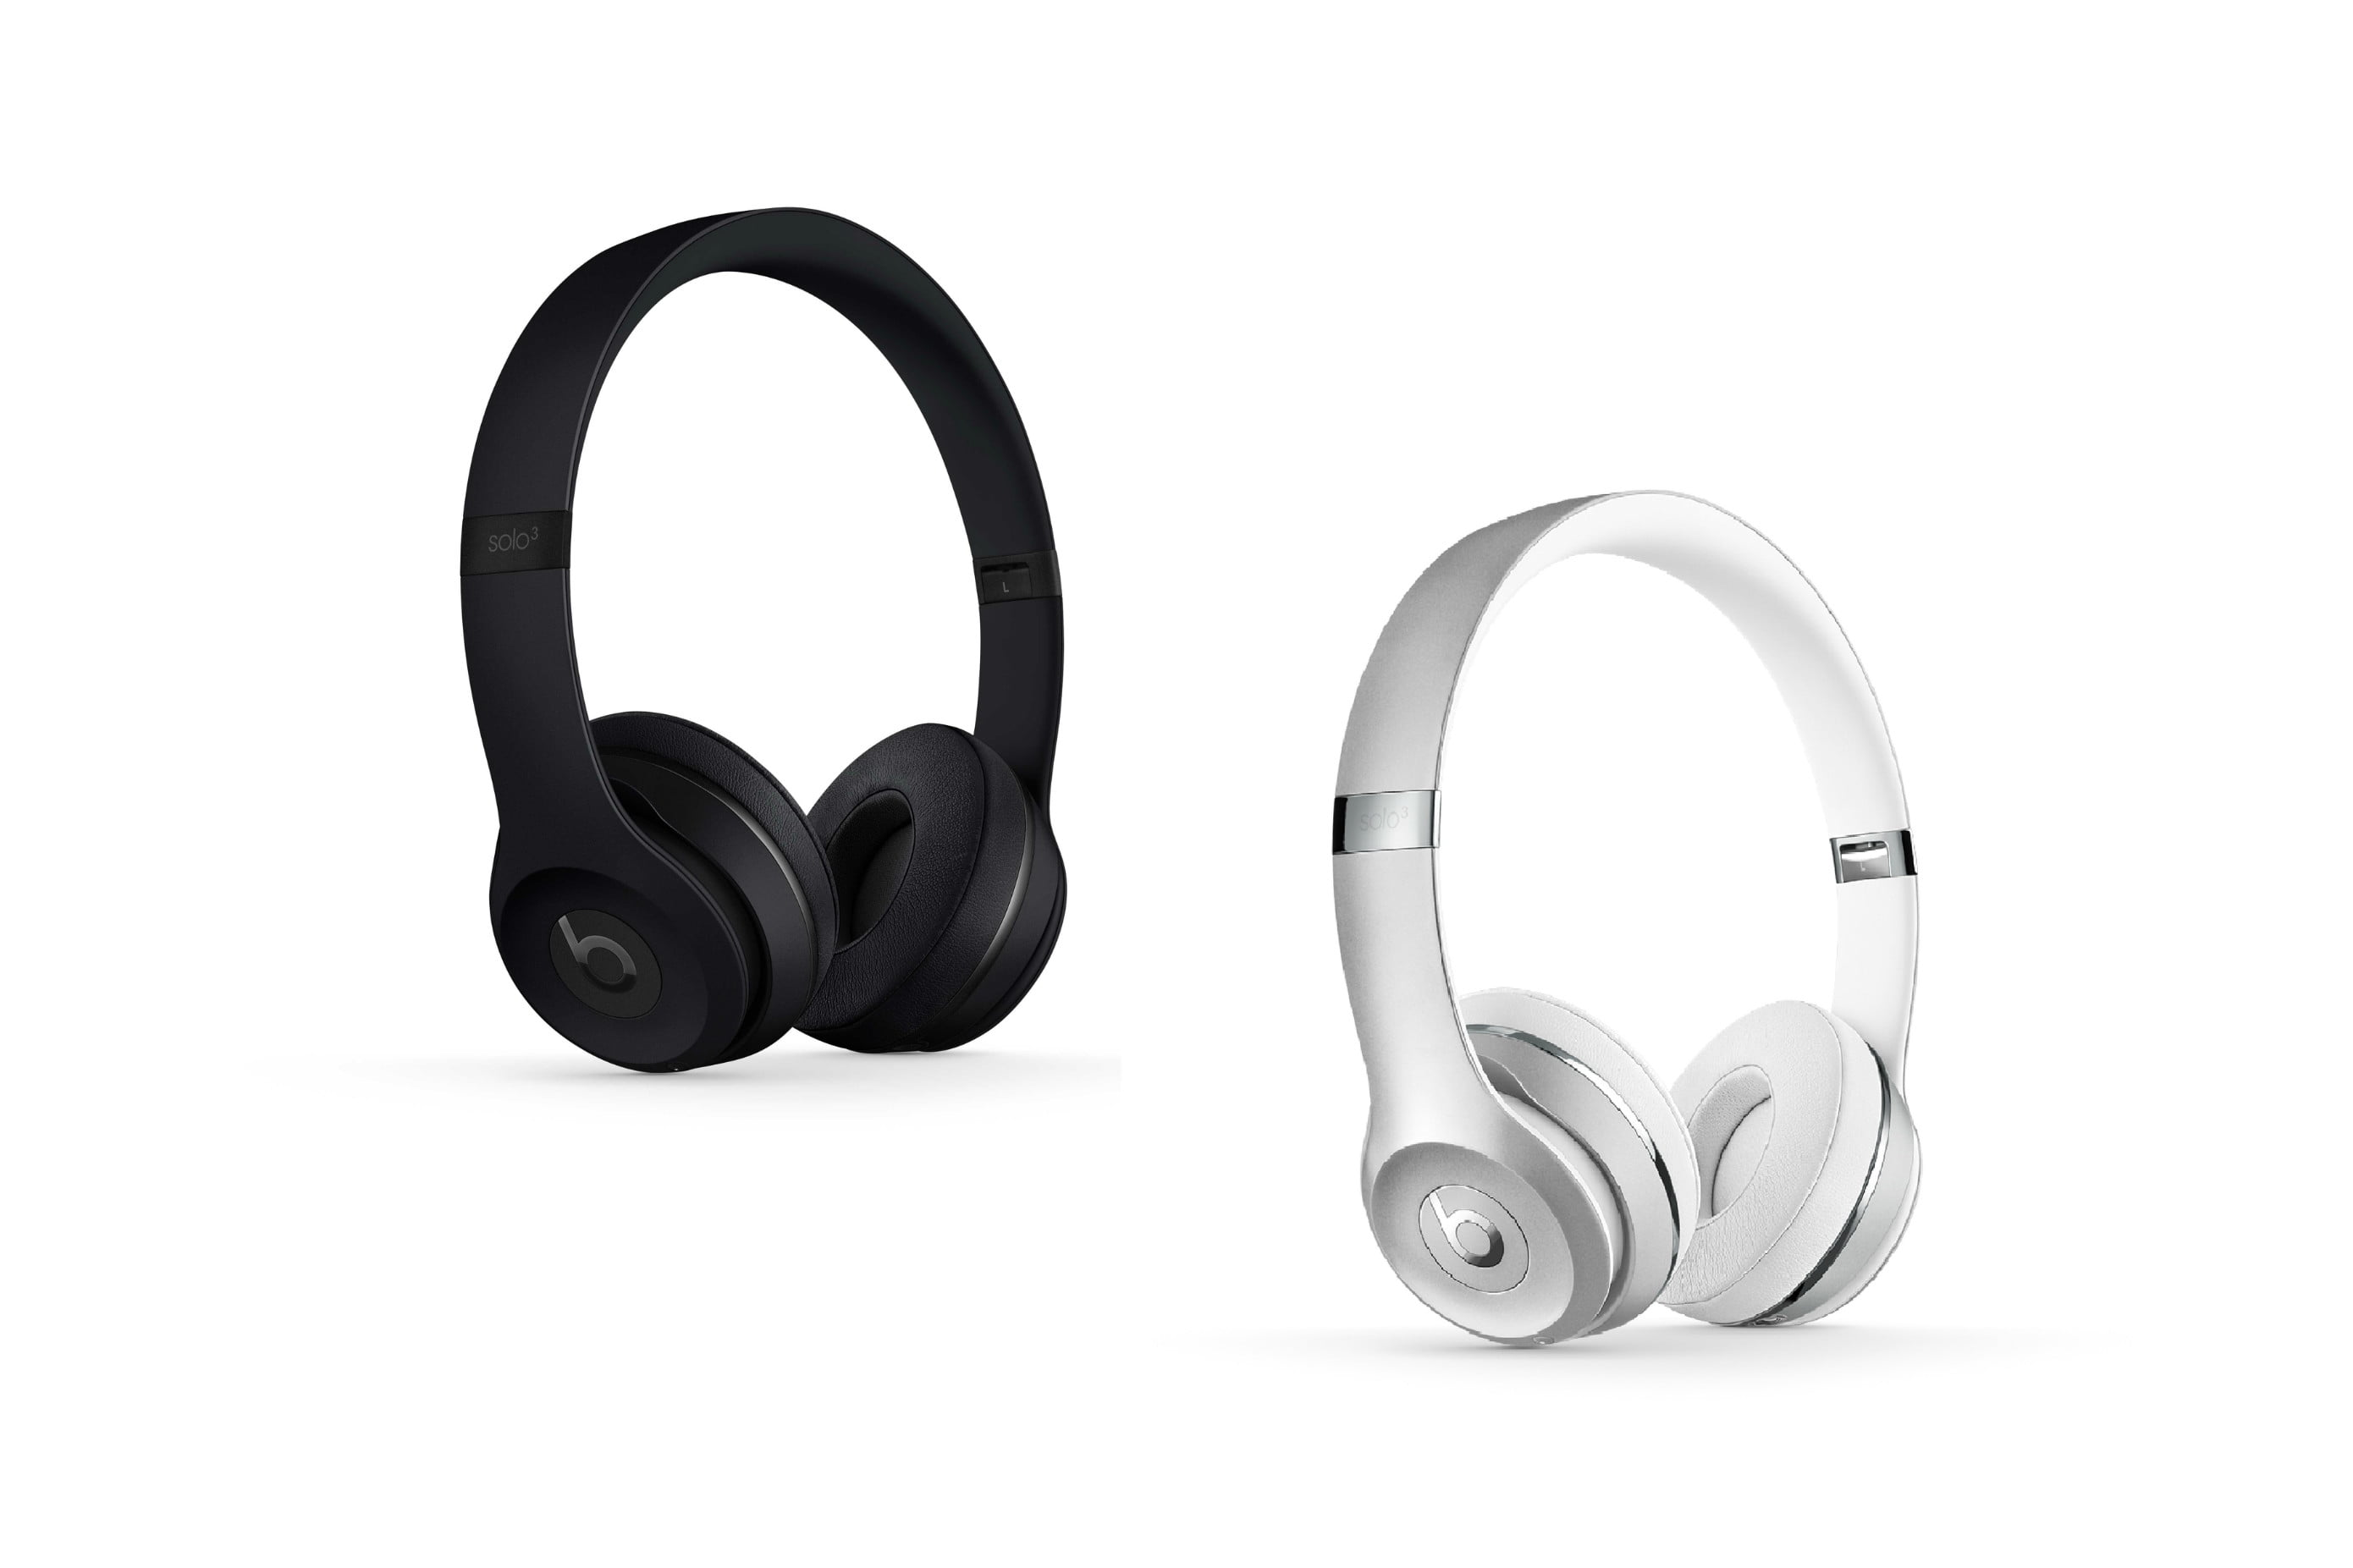 a54c44a1046 Amazon and Walmart Drop Sweet Deals on Beats EP and Solo3 Headphones |  Digital Trends